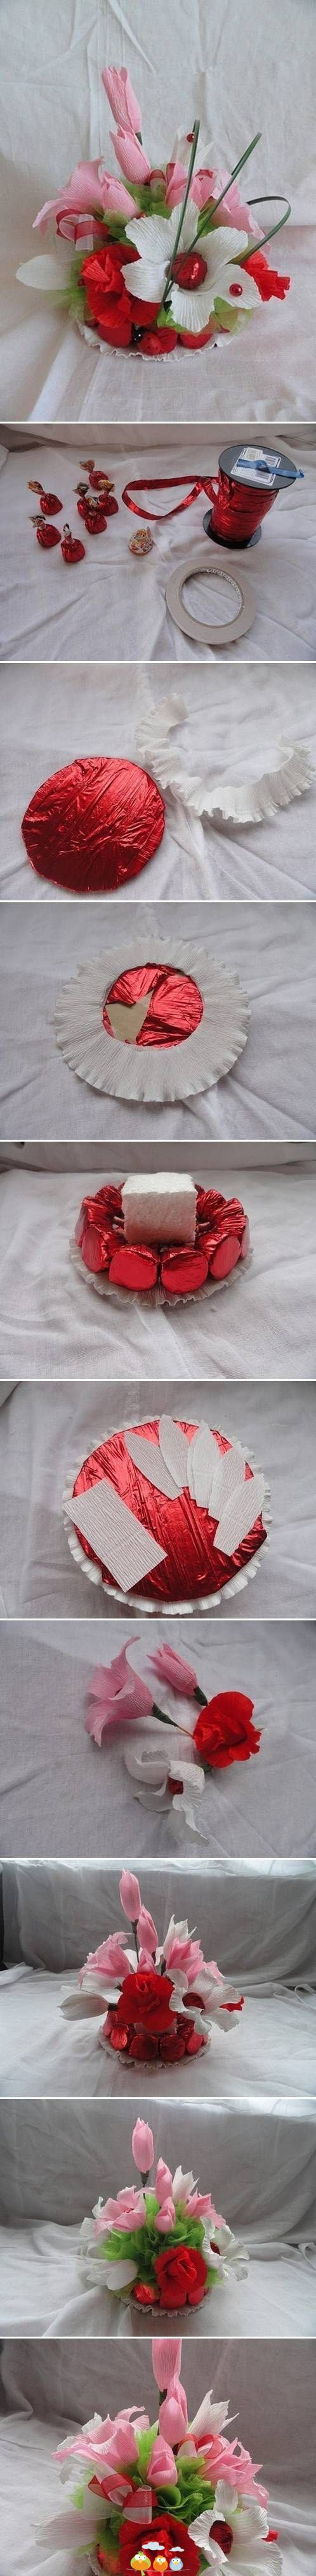 gift chocolates in style